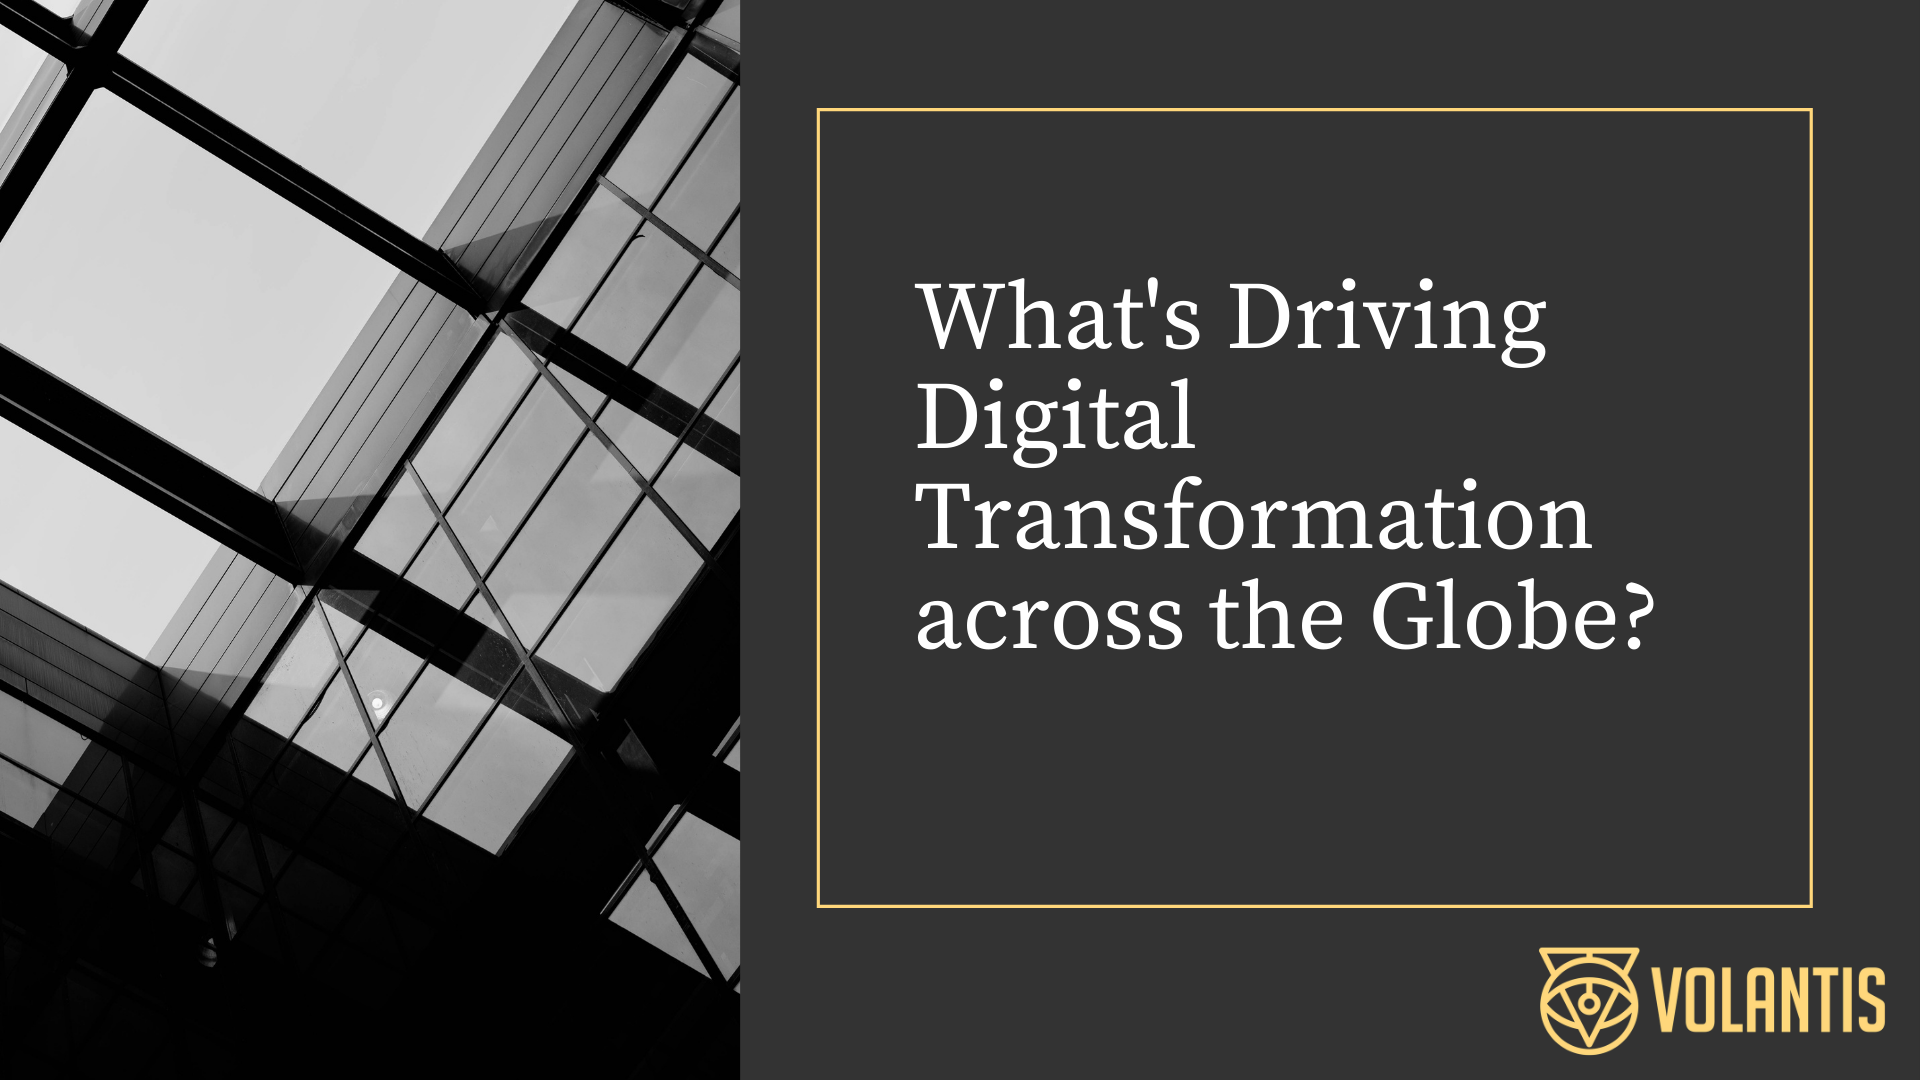 what is the driving force behind digital transformartion?